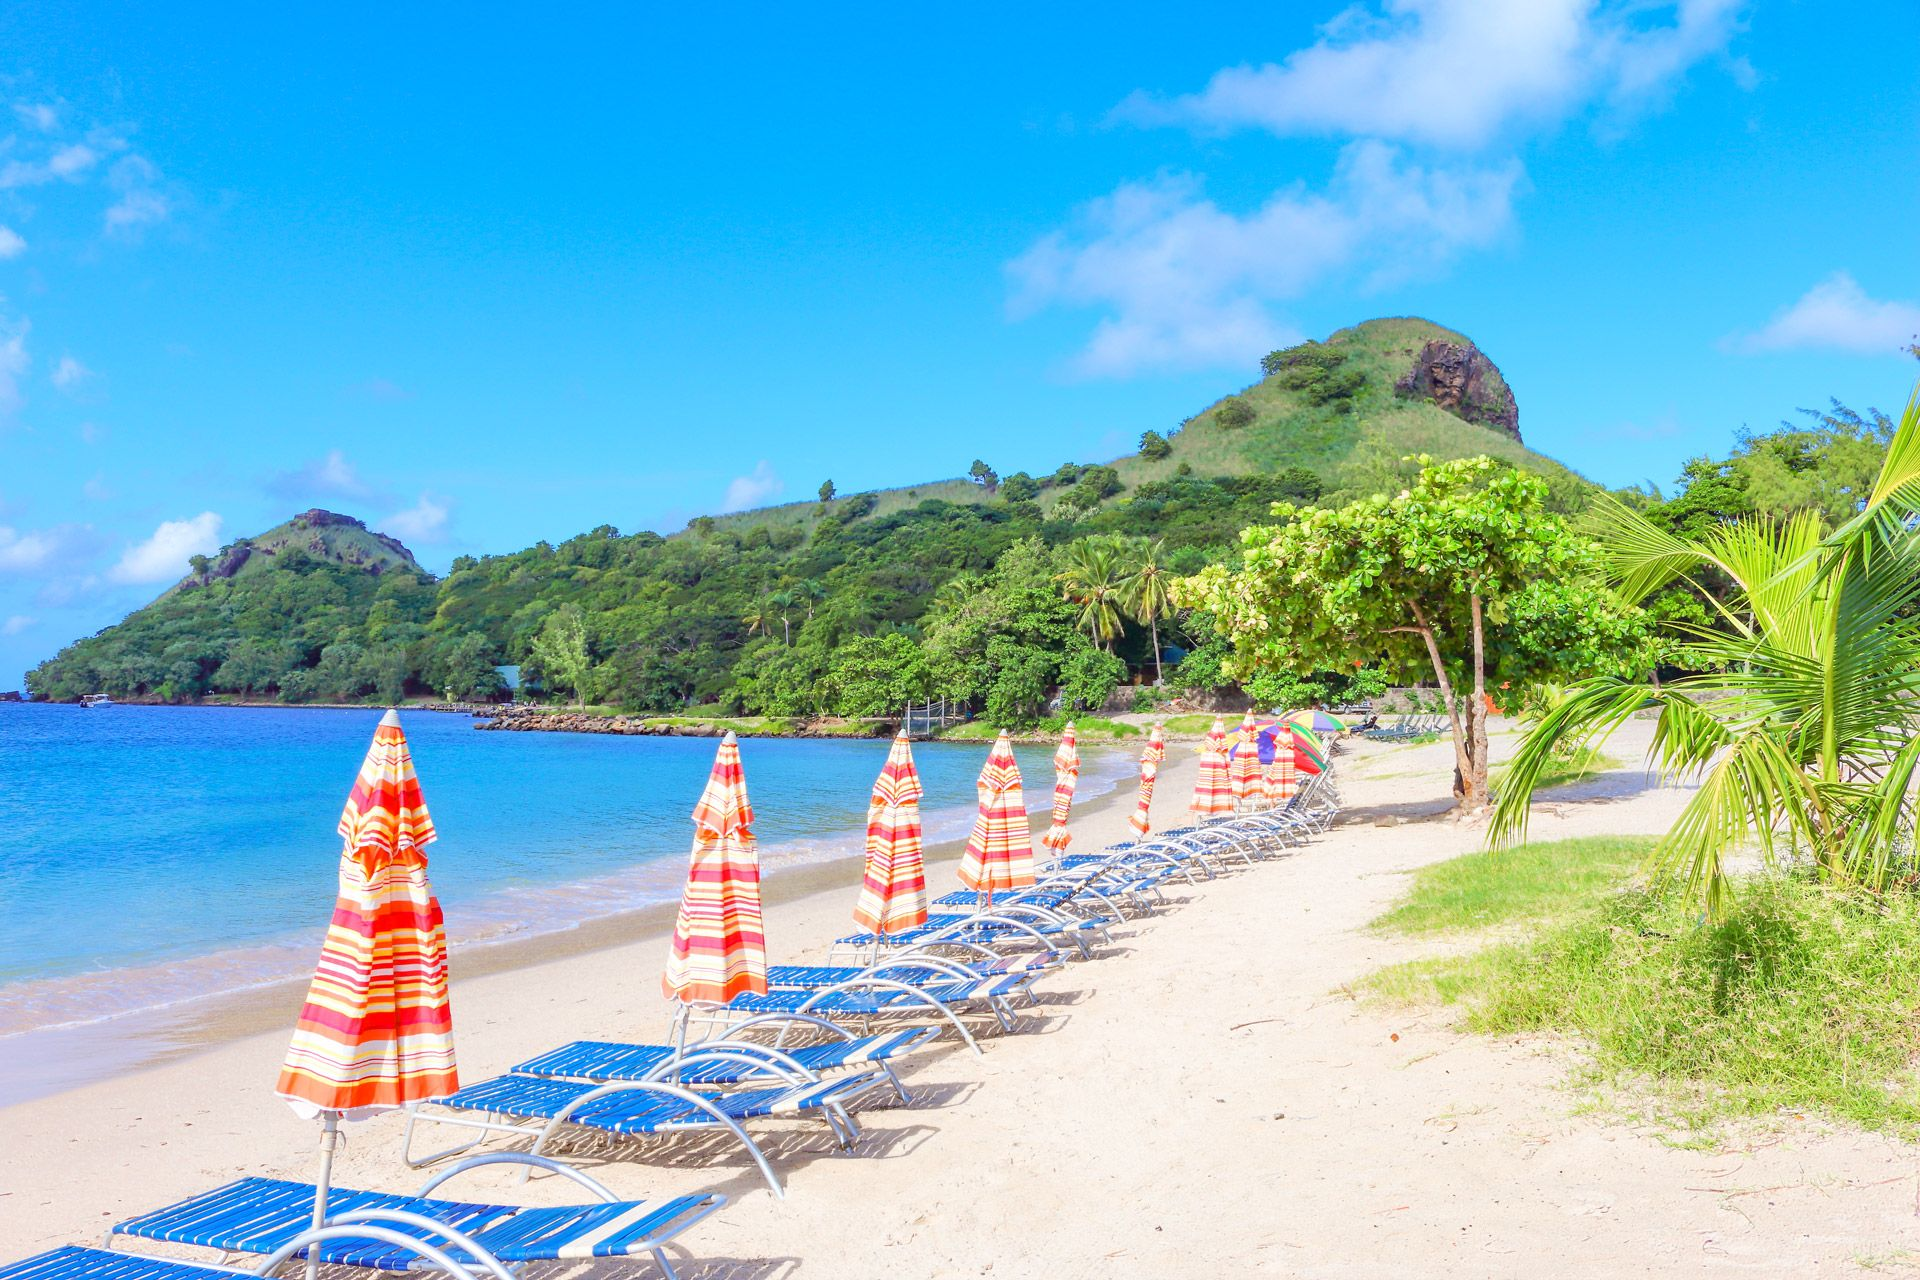 Pigeon-island-beach-with-umbrellas